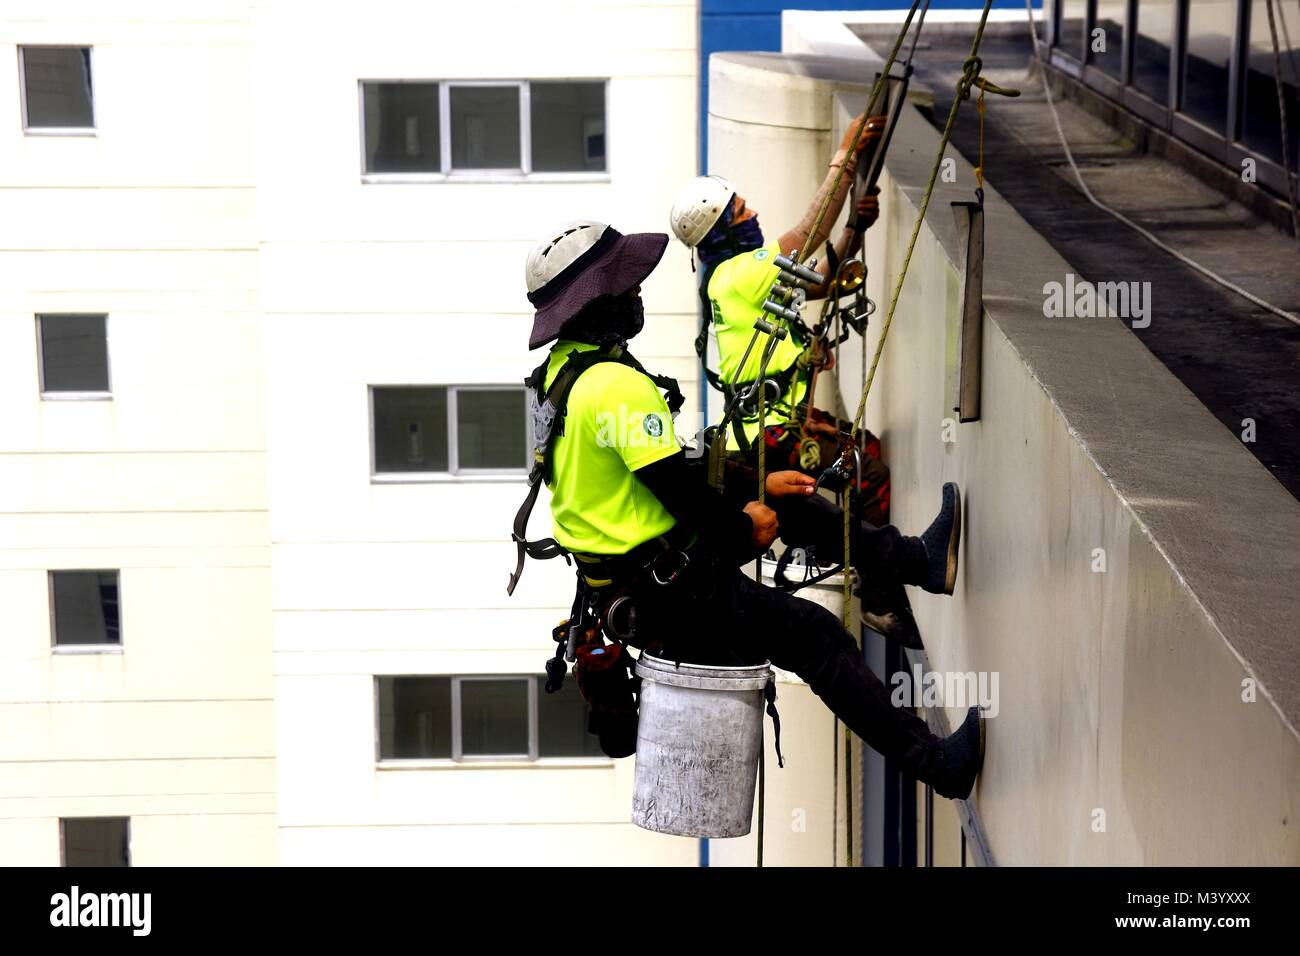 PASIG CITY, PHILIPPINES - FEBRUARY 7, 2018: Professional window cleaners descend down the exterior of a building - Stock Image